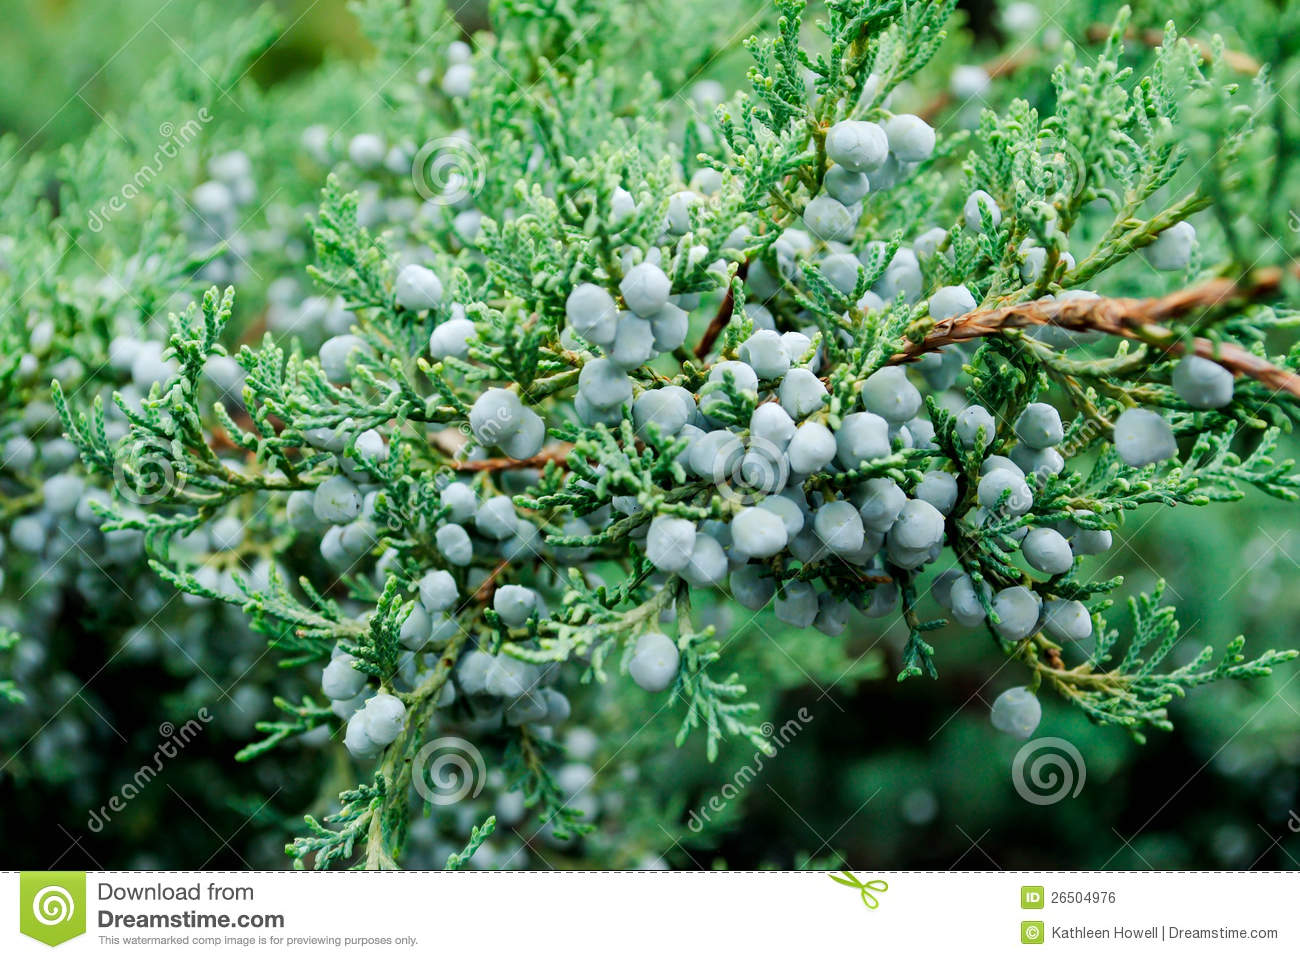 Juniper Bush Royalty Free Stock Image - Image: 26504976